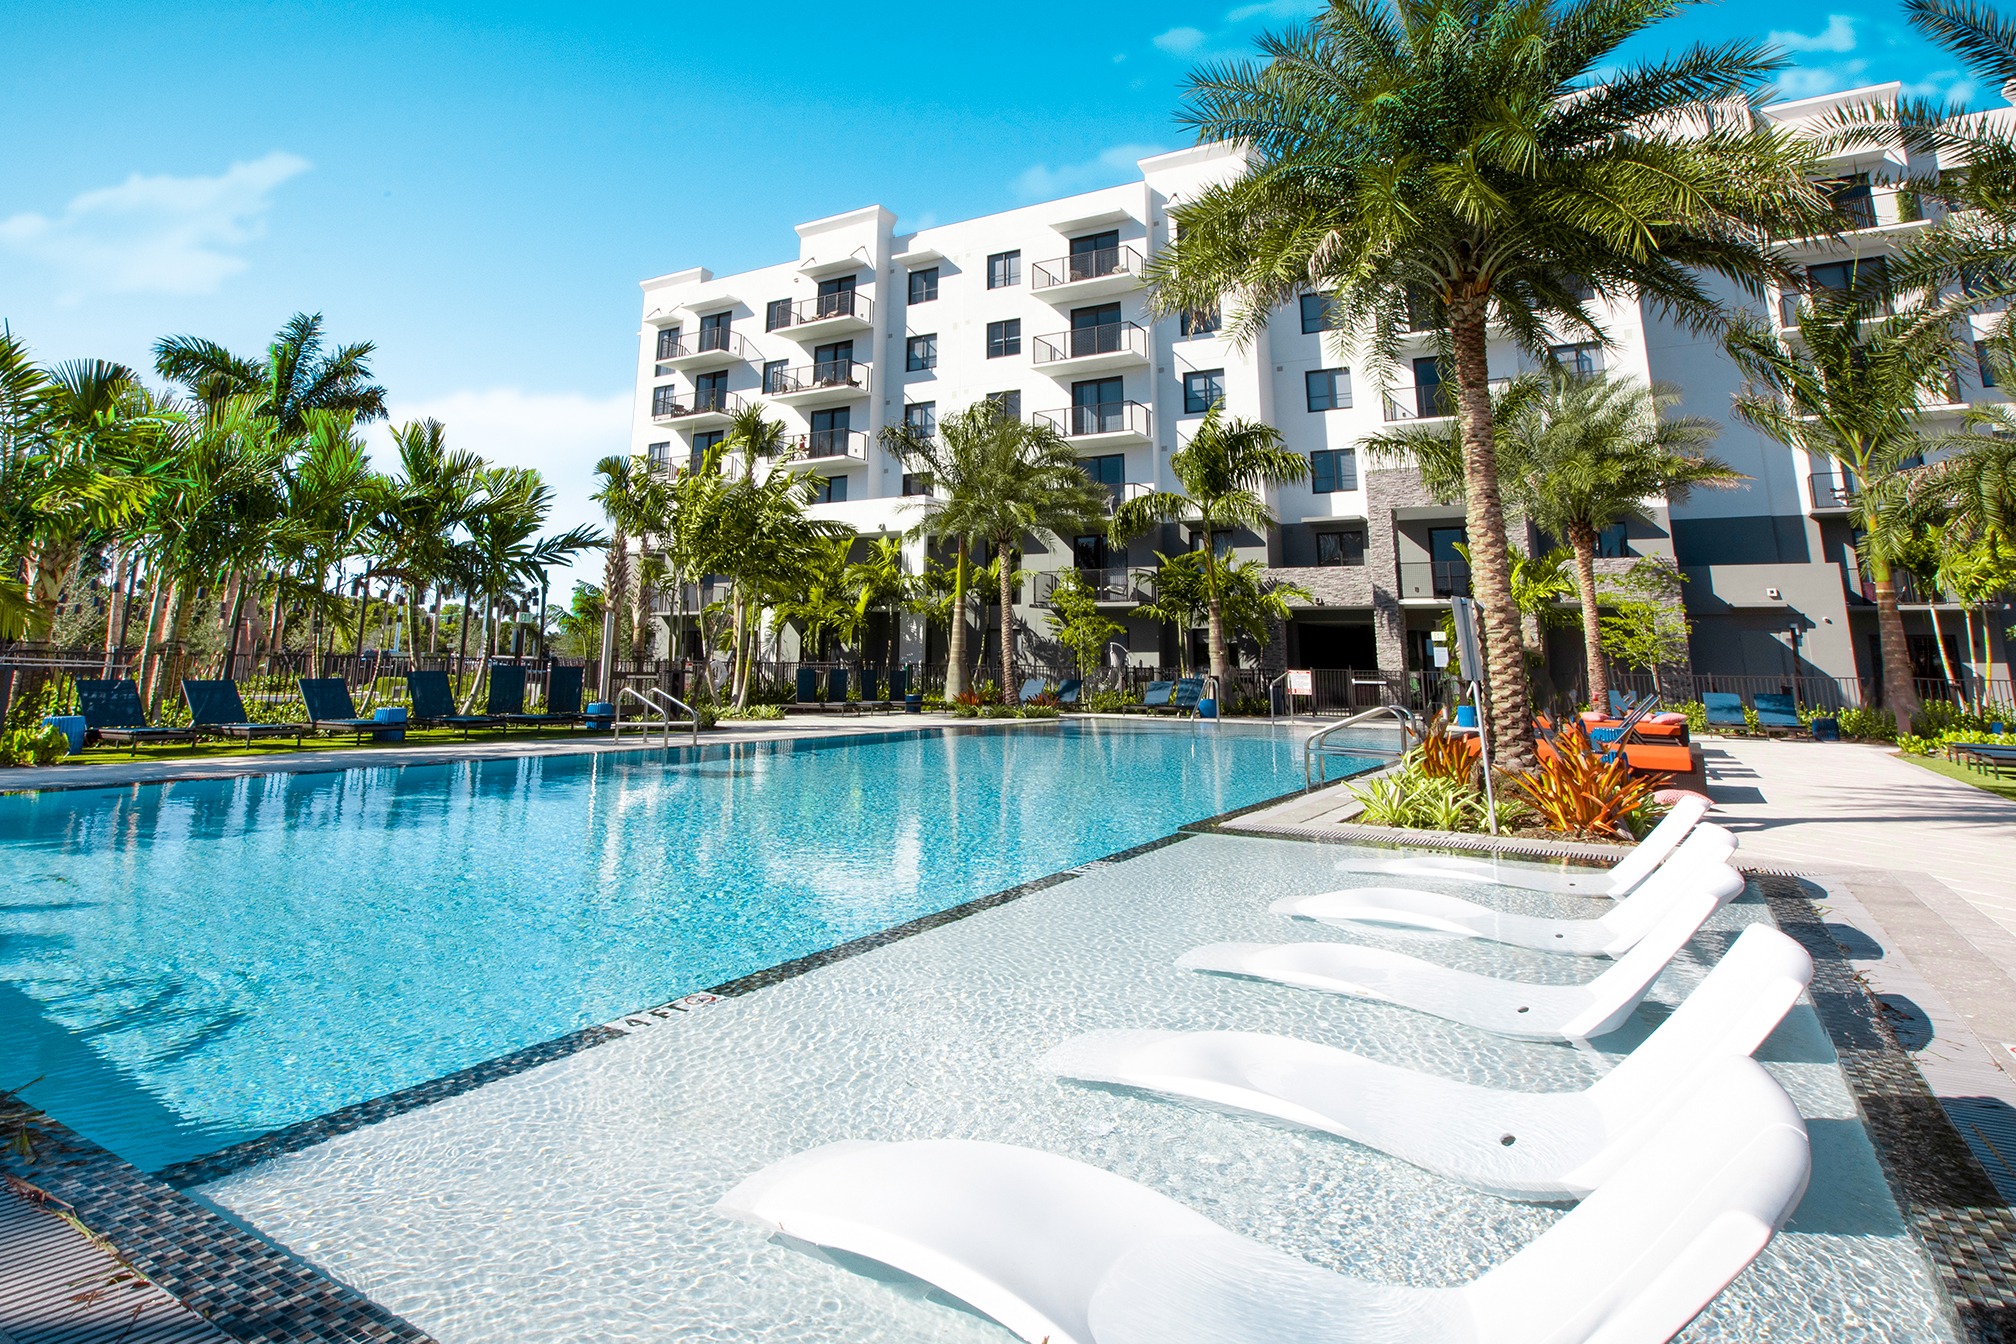 sanctuary pool amenity surrounded with palm trees and lounge chairs